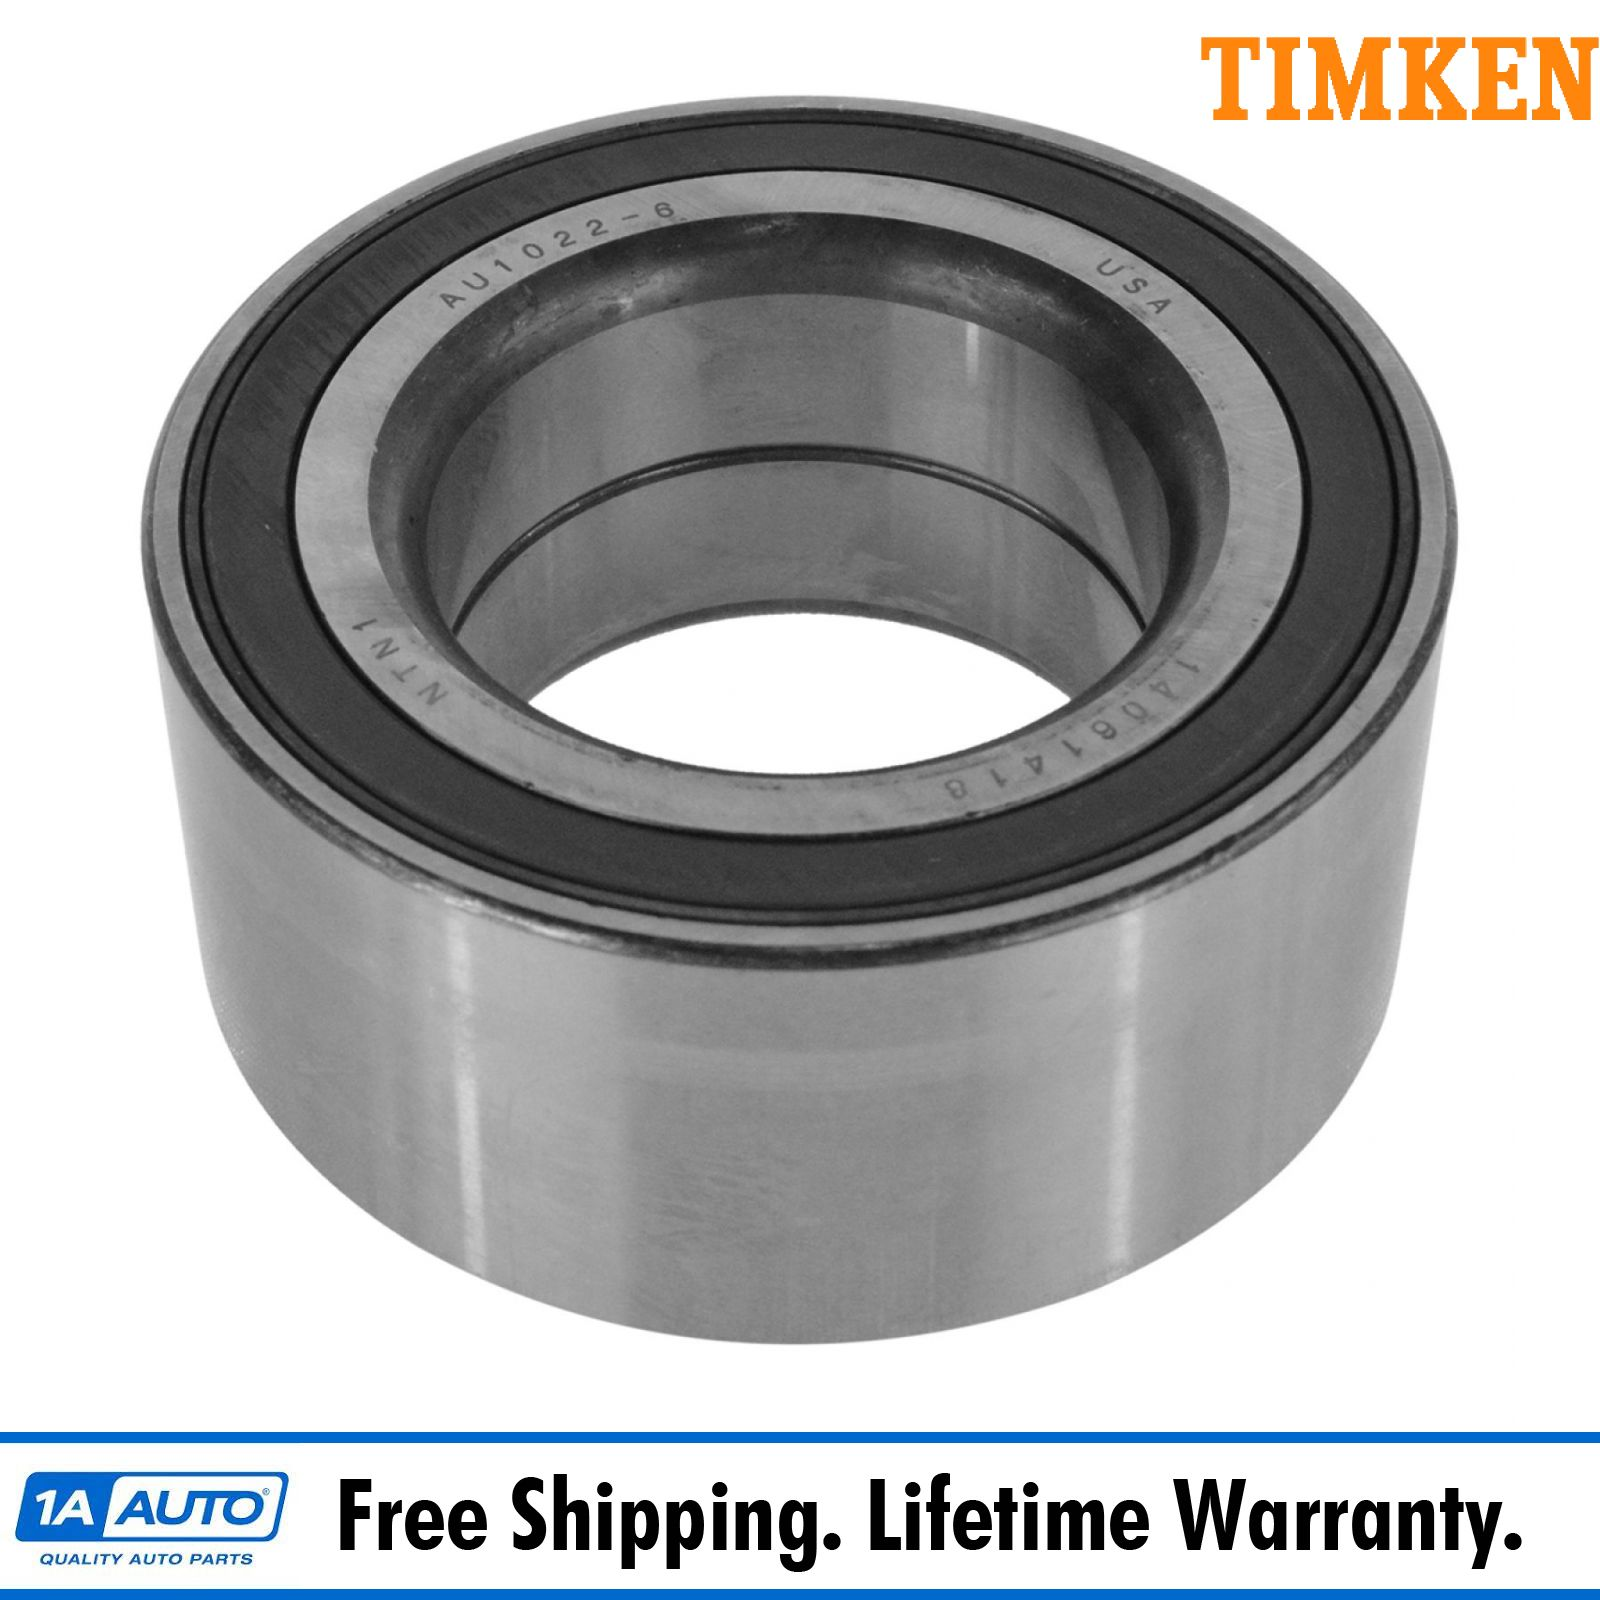 TIMKEN Wheel Bearing Front LH Or RH For Acura TL TSX Honda